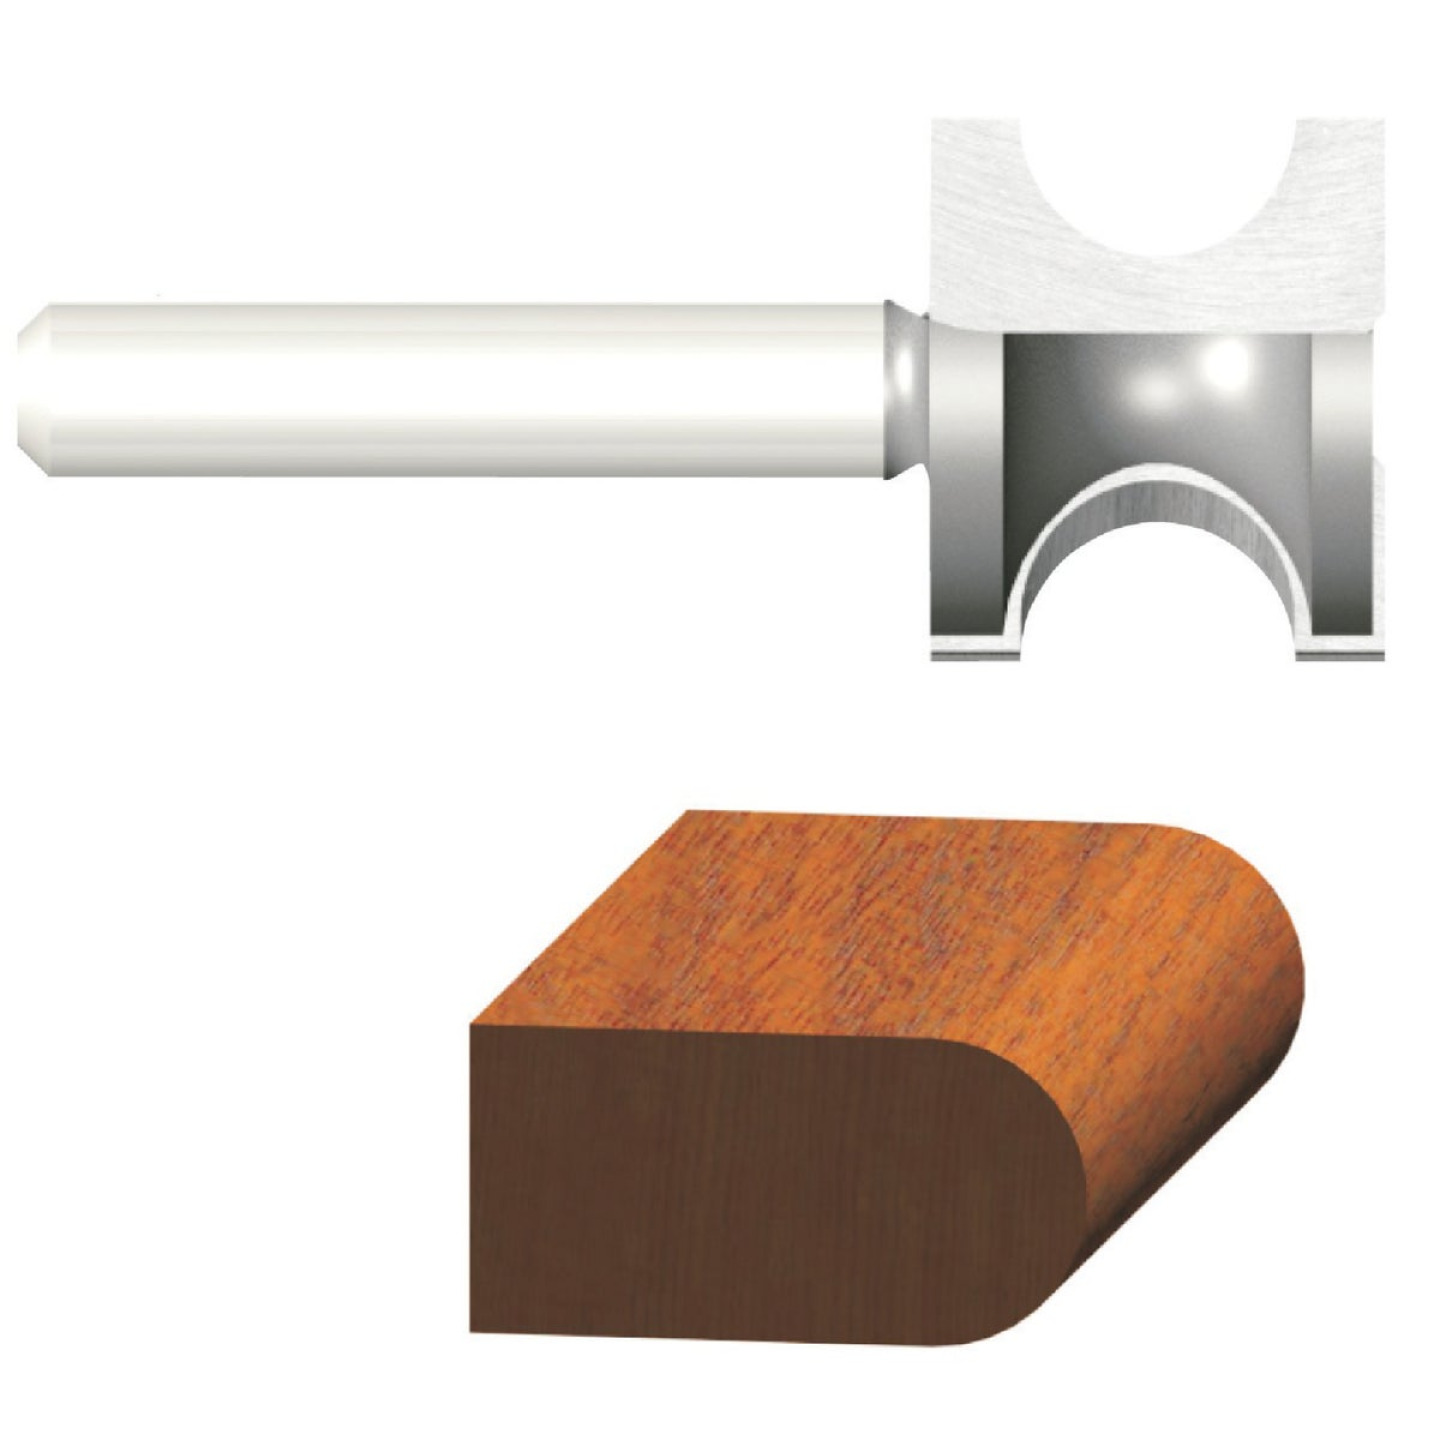 Vermont American Carbide 7/8 In. 3/4 In. Bull Nose Bit Image 1